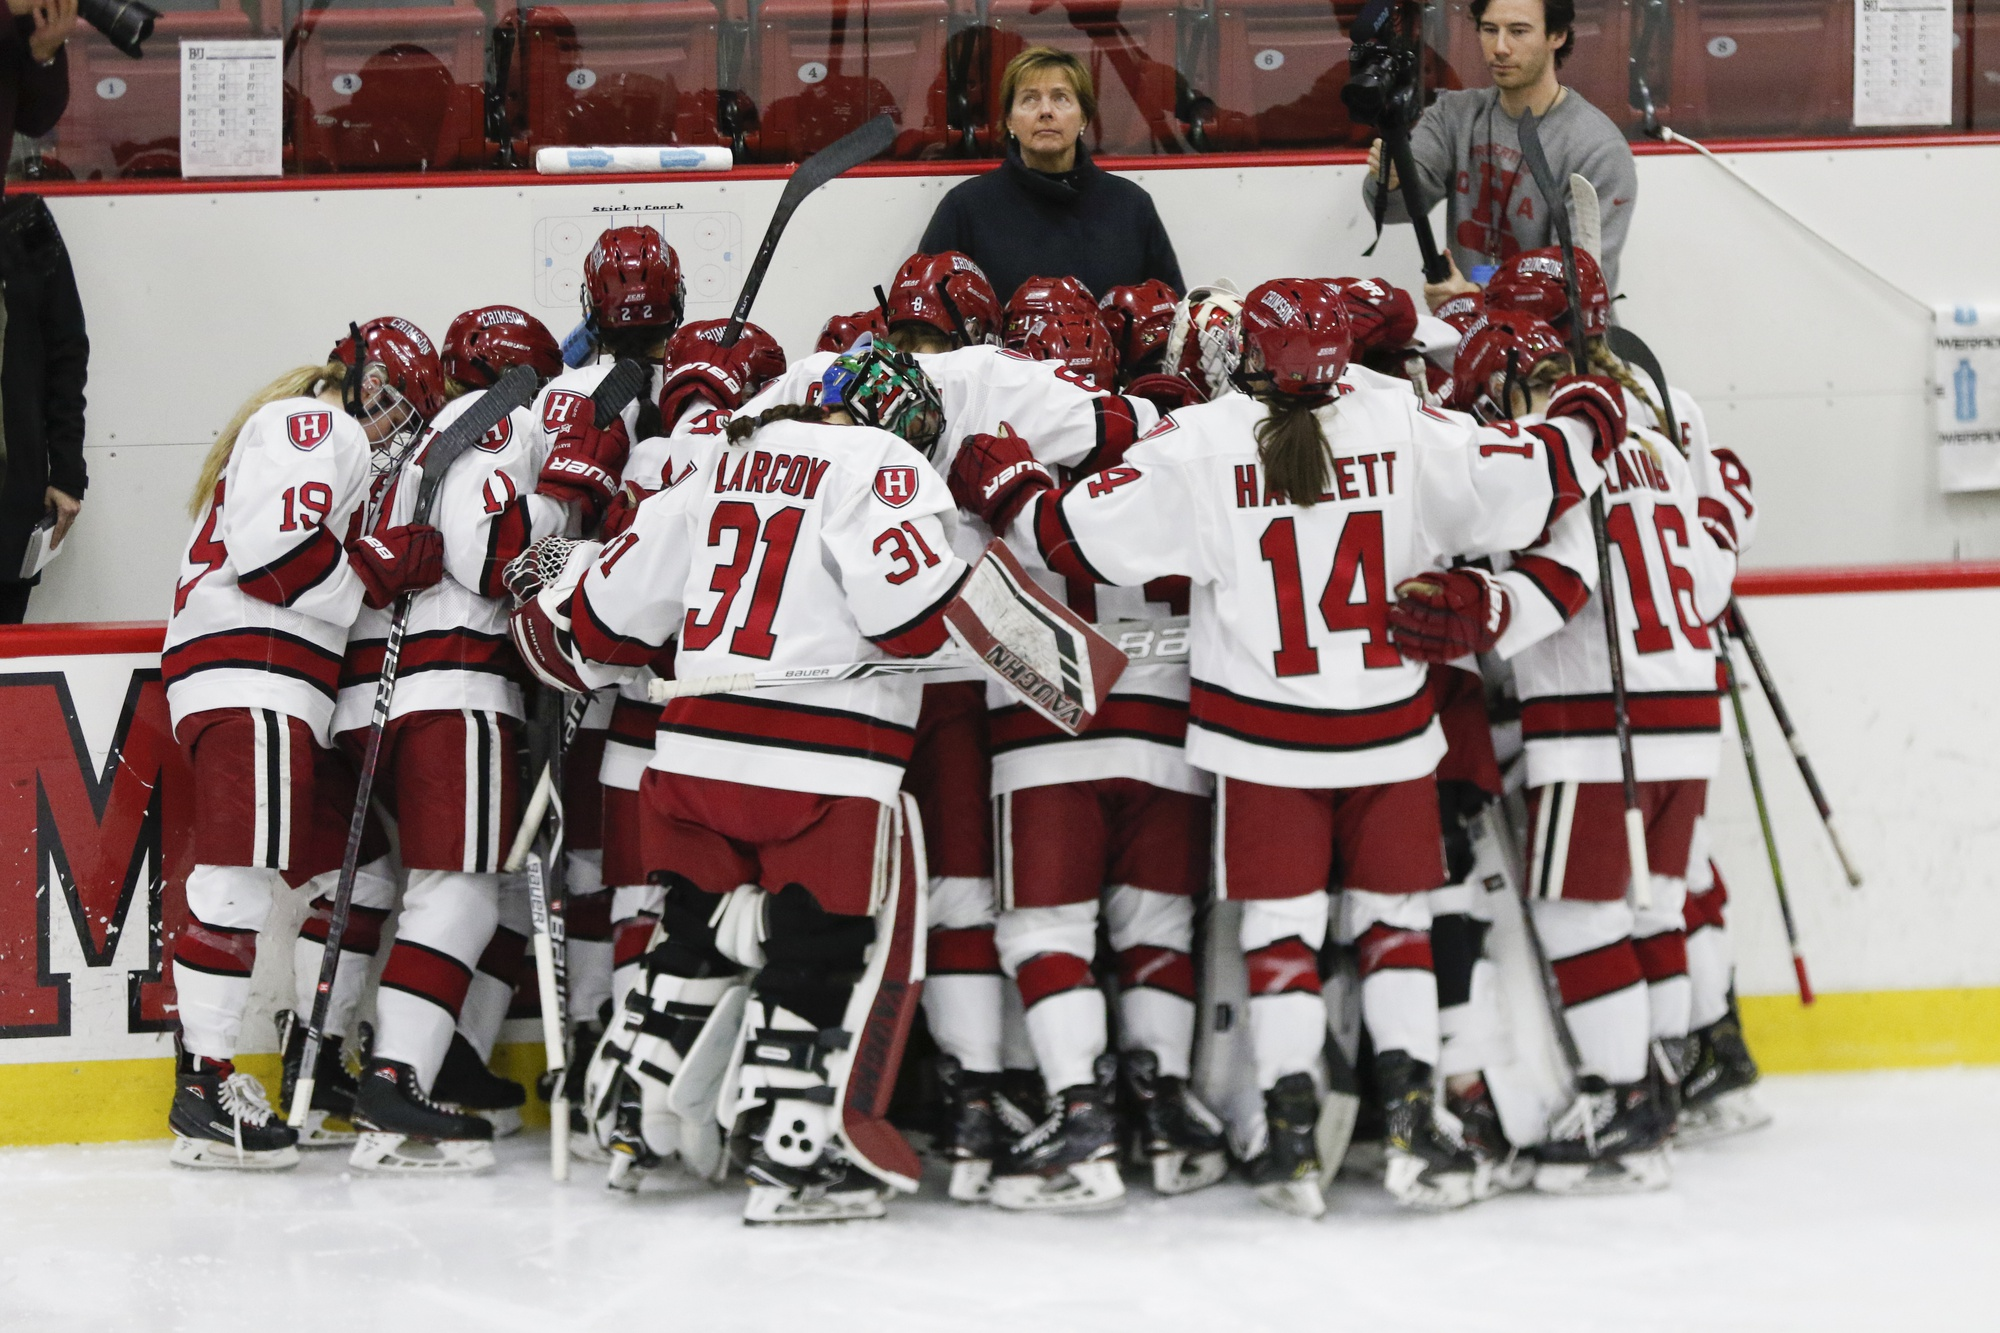 Harvard huddles during its 2019 Beanpot finals appearance against Boston University. This year, however, the Crimson will not have the chance to avenge its overtime loss to the Terriers, falling in the 2020 semifinals.